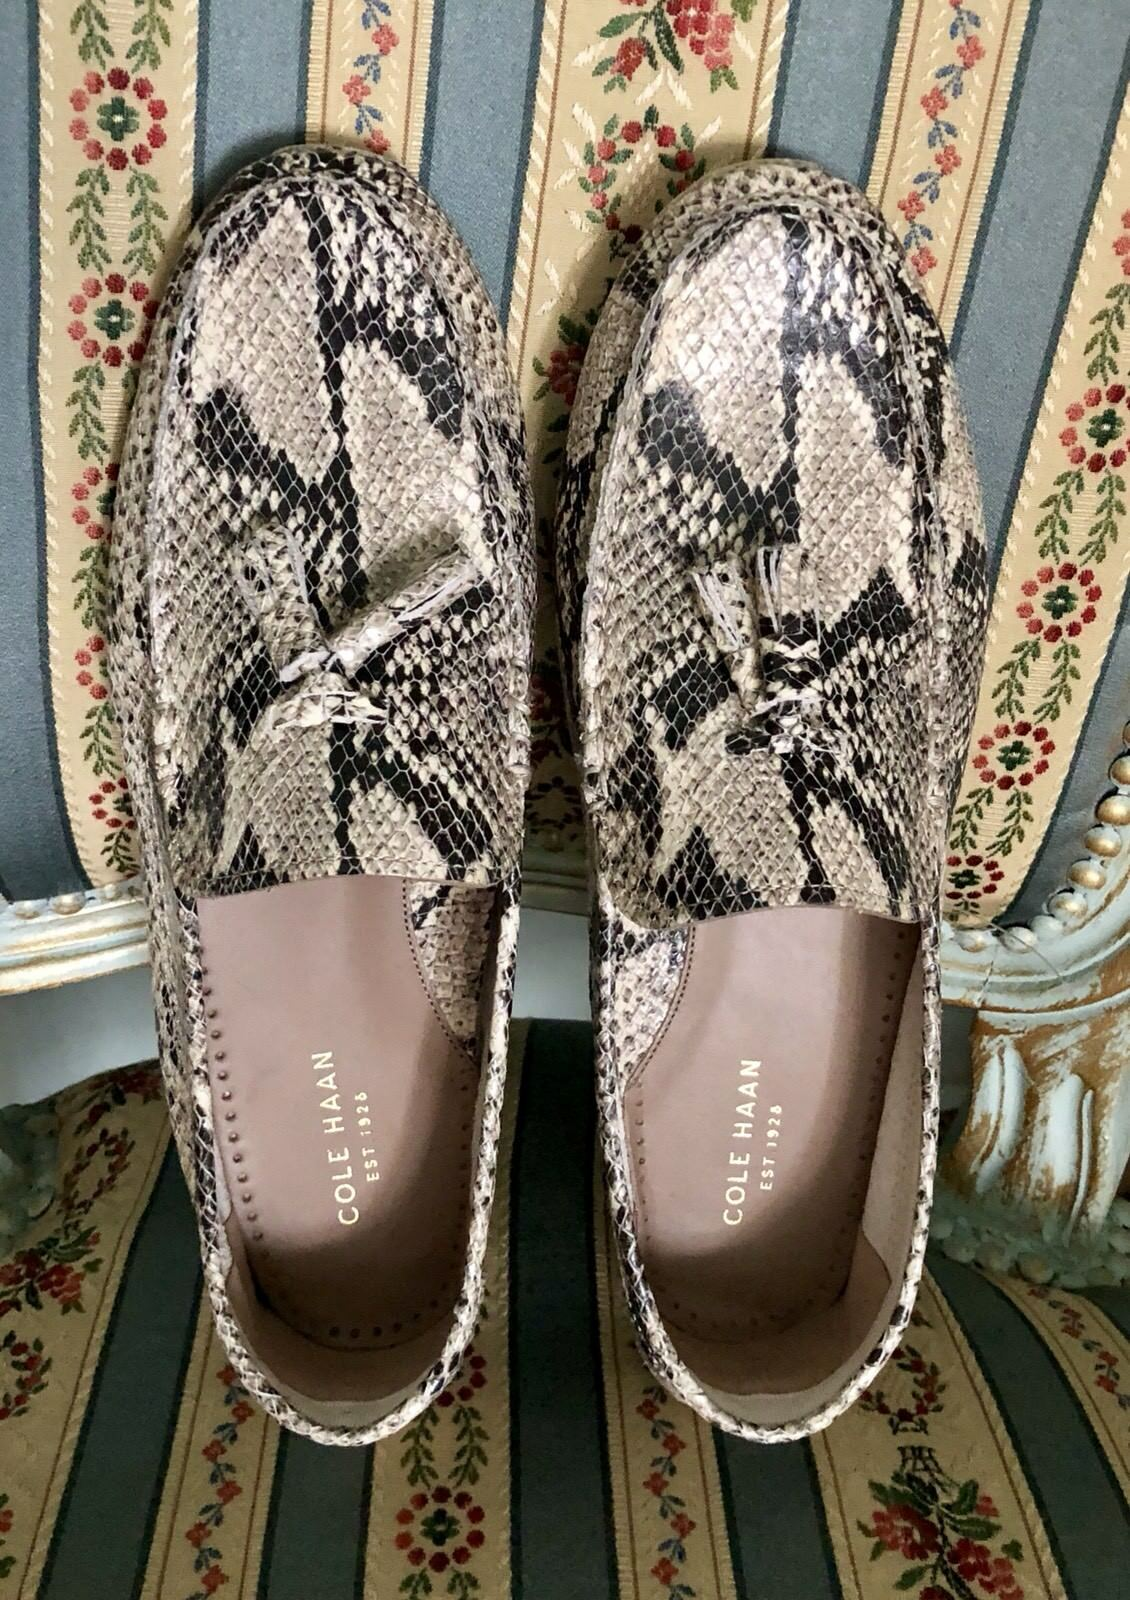 New Cole Haan Leather Leather Leather Snakeskin Beige shoes Size 9 b7bc33